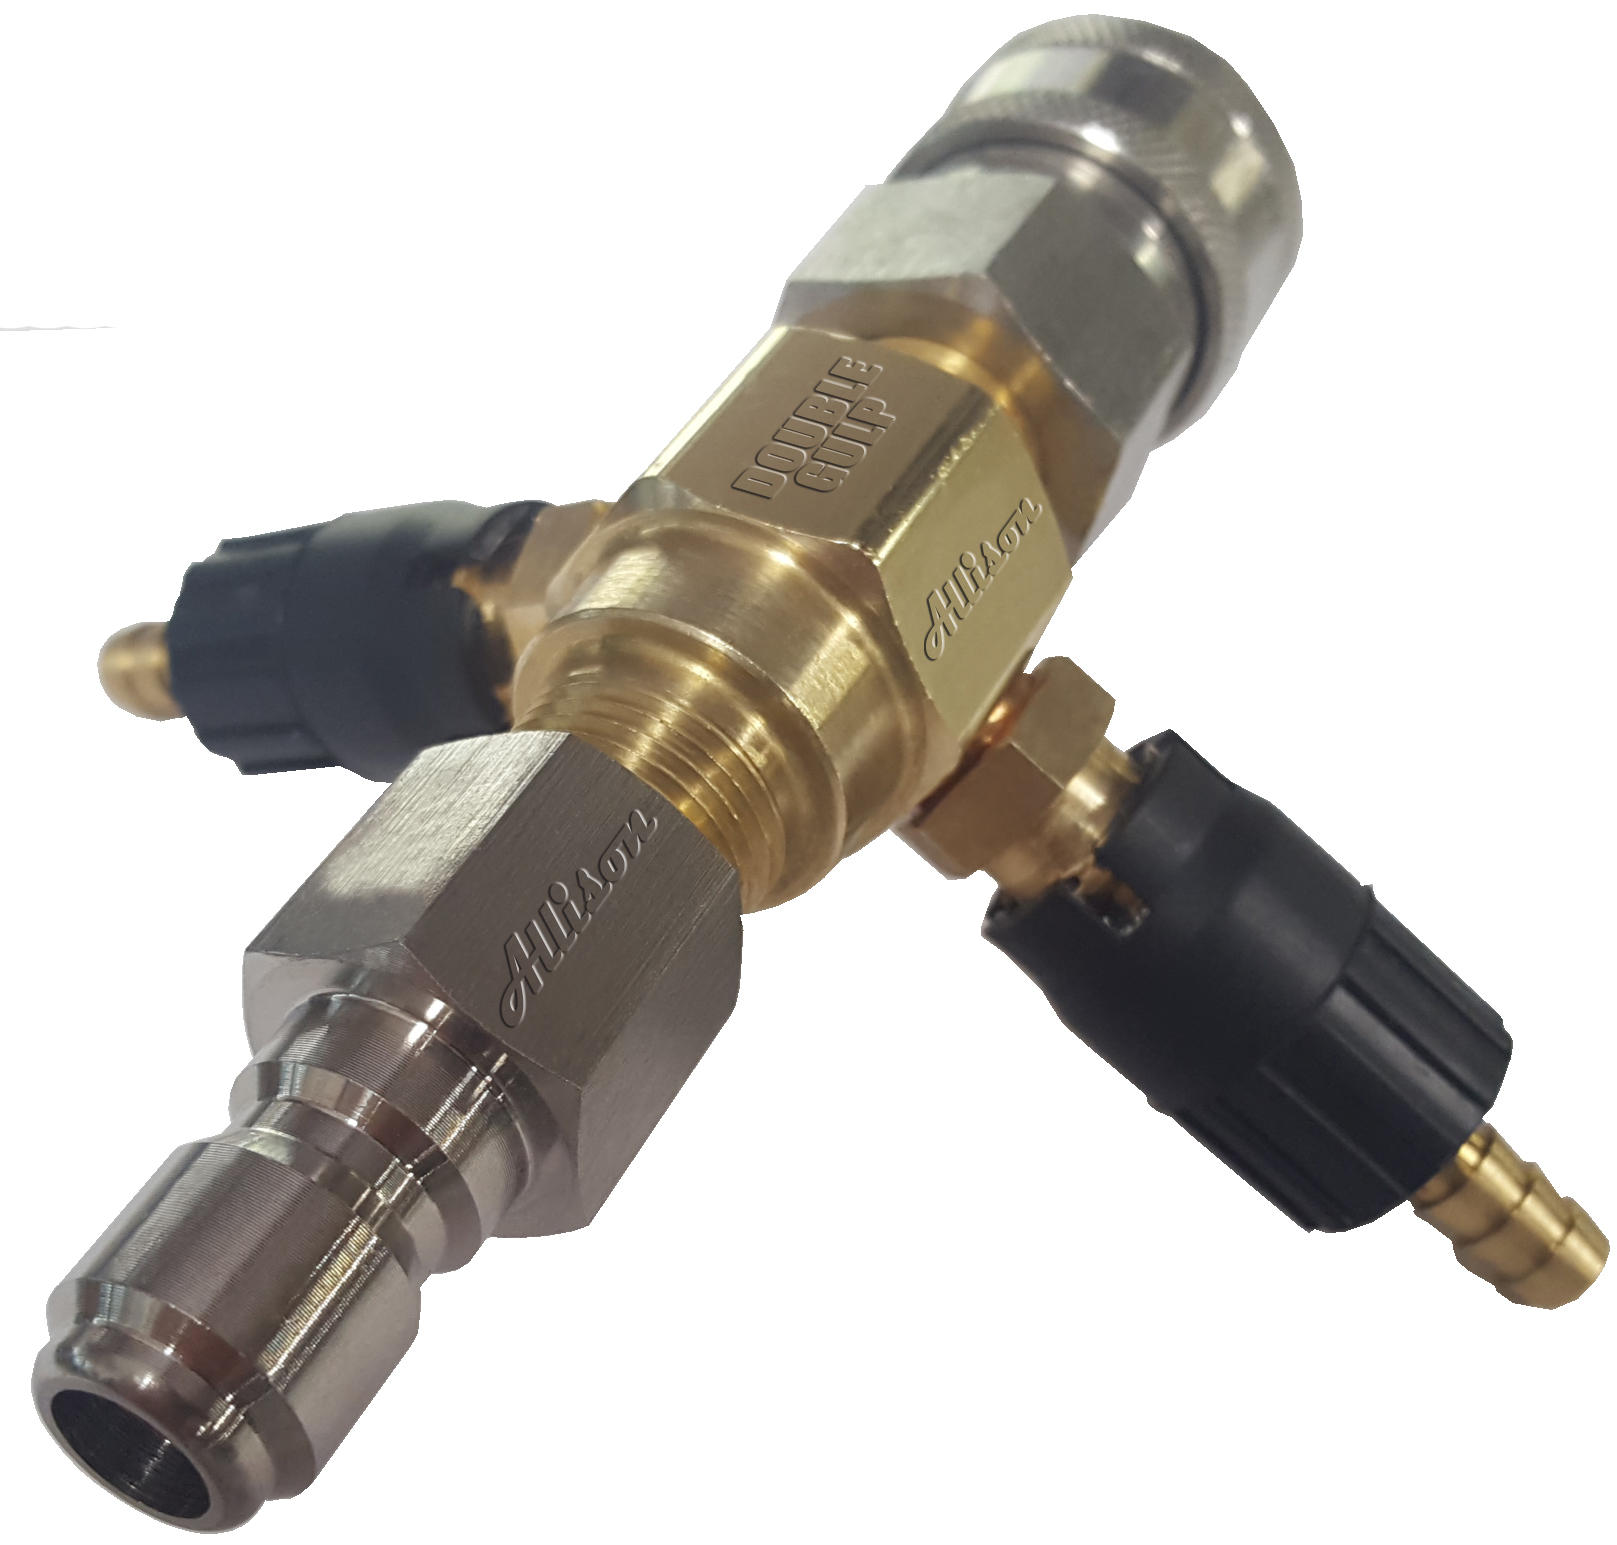 injectors are use on pressure washers to apply cleaning ...